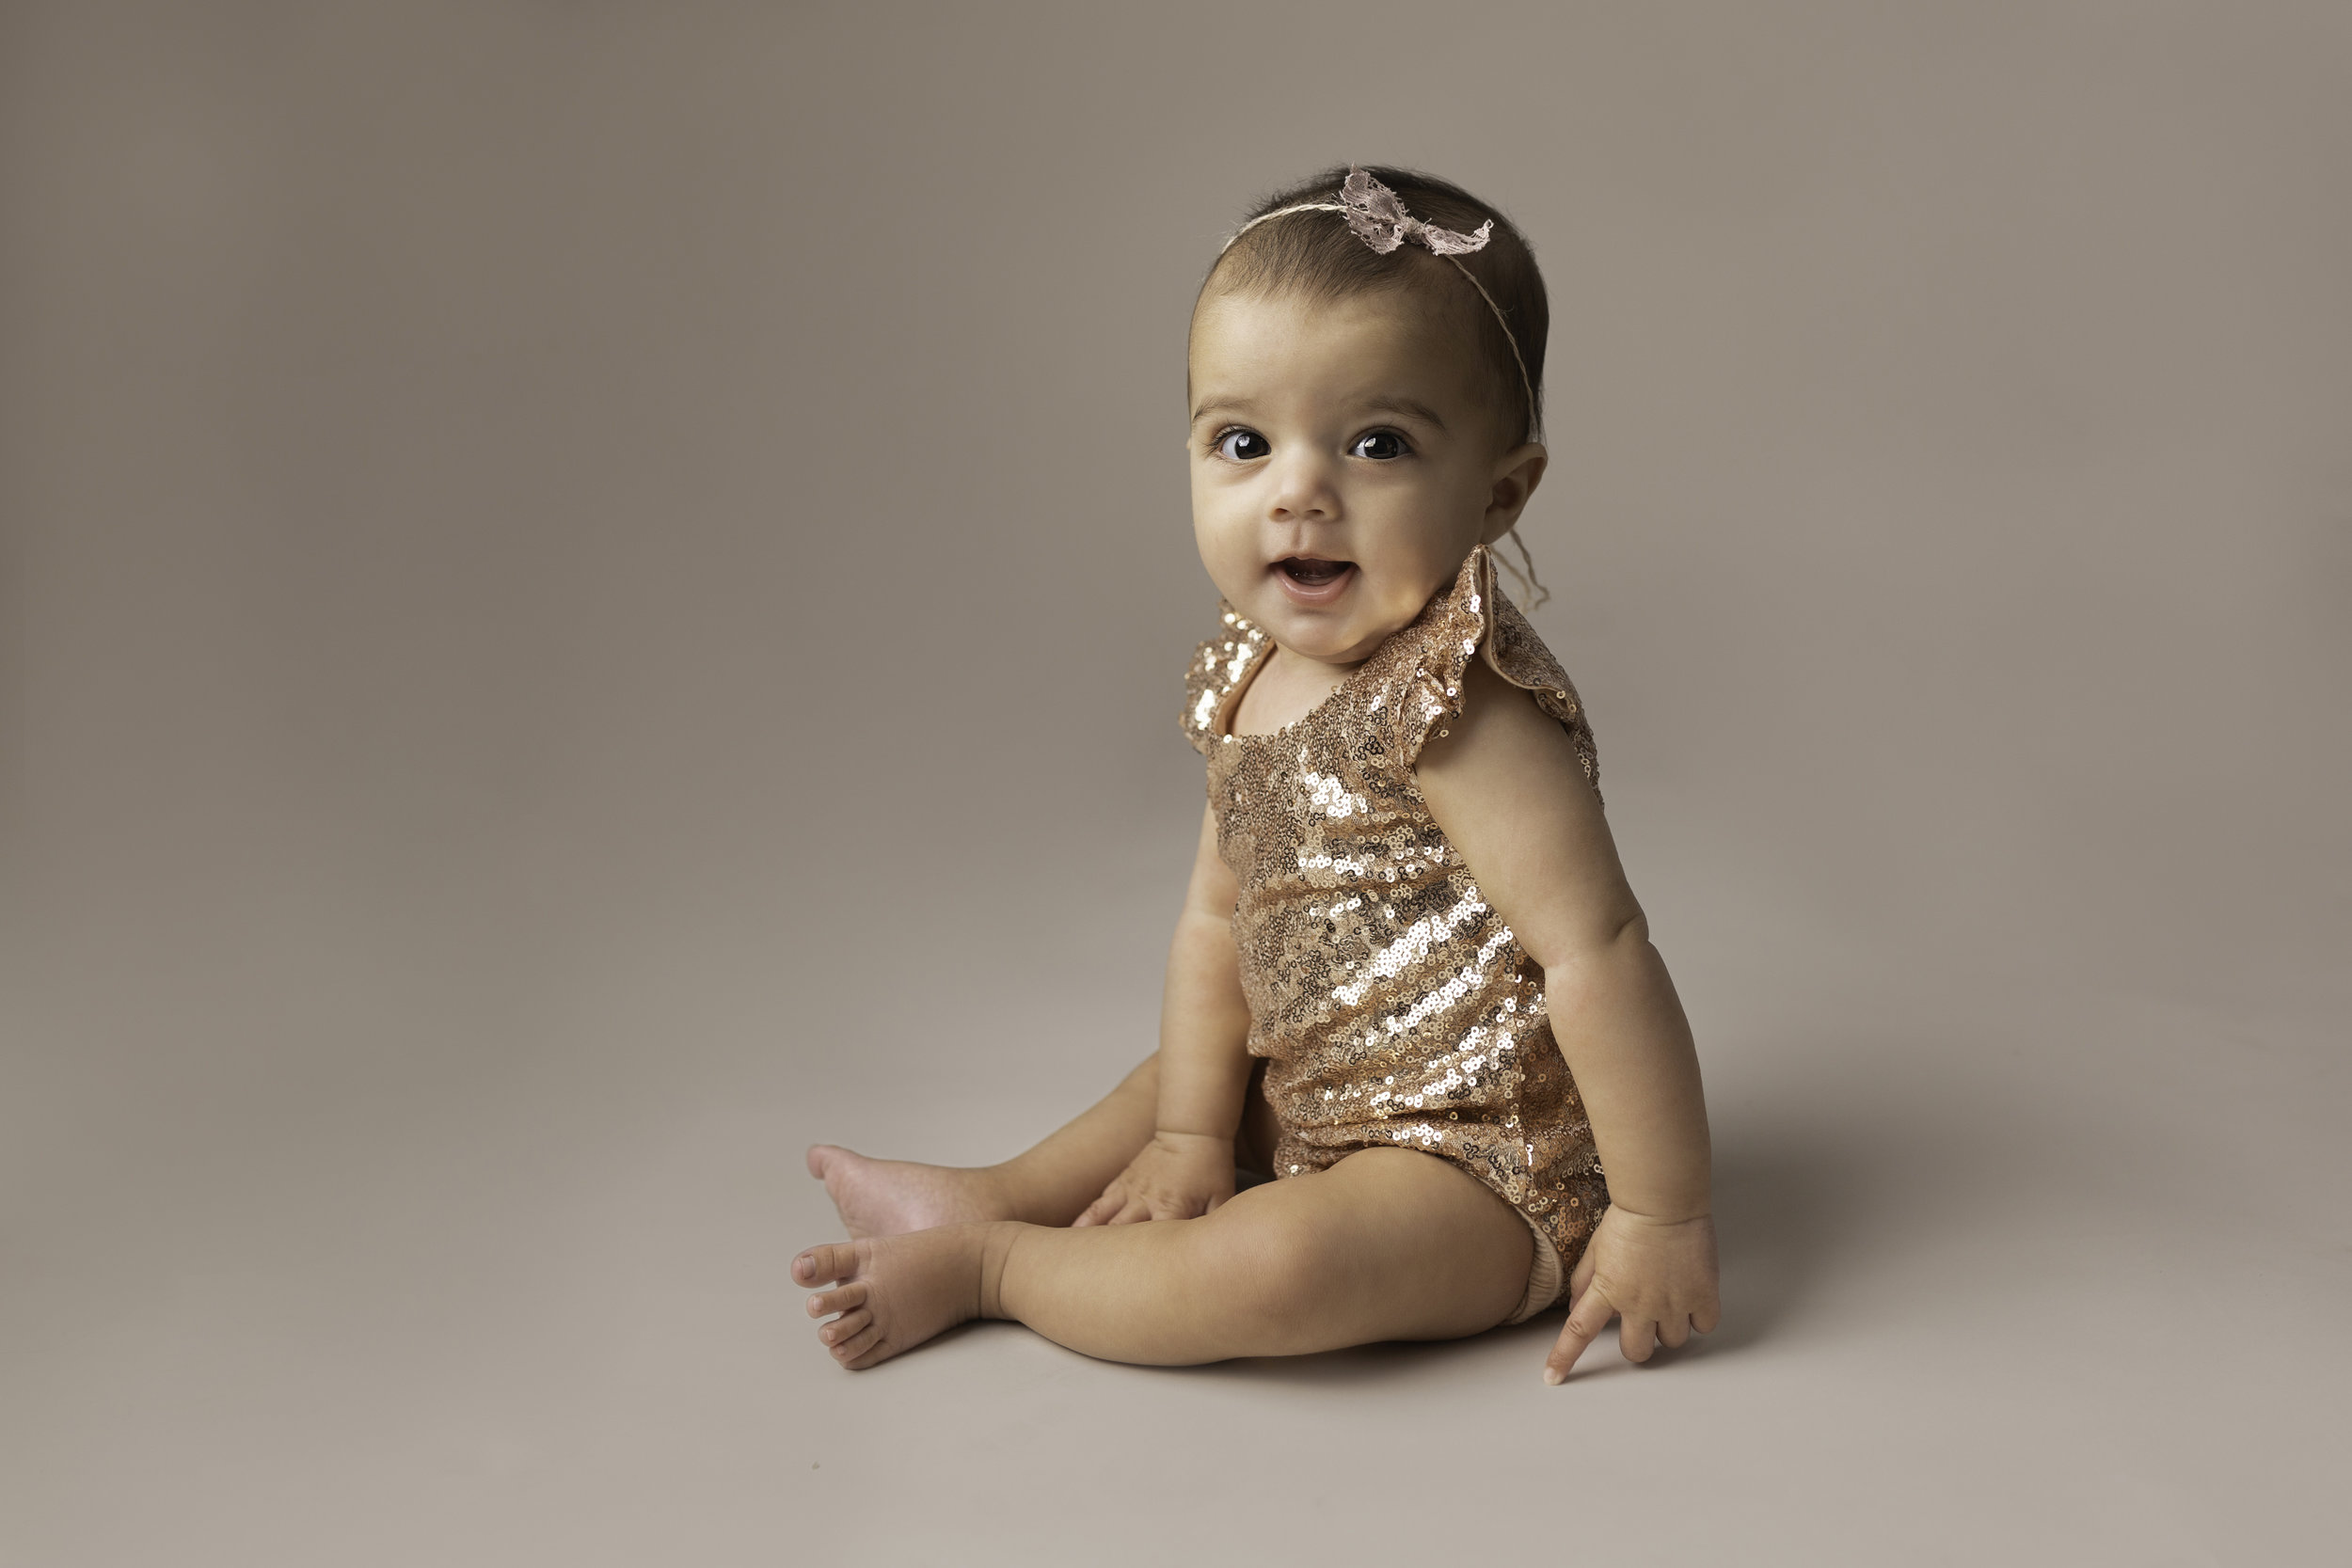 Lea-cooper-photography-childrens-photographer-portrait-session-sitter-session-6-months-old-photos-willenhall-wolverahmpton-birmingham-west-midlands-uk-2.jpg